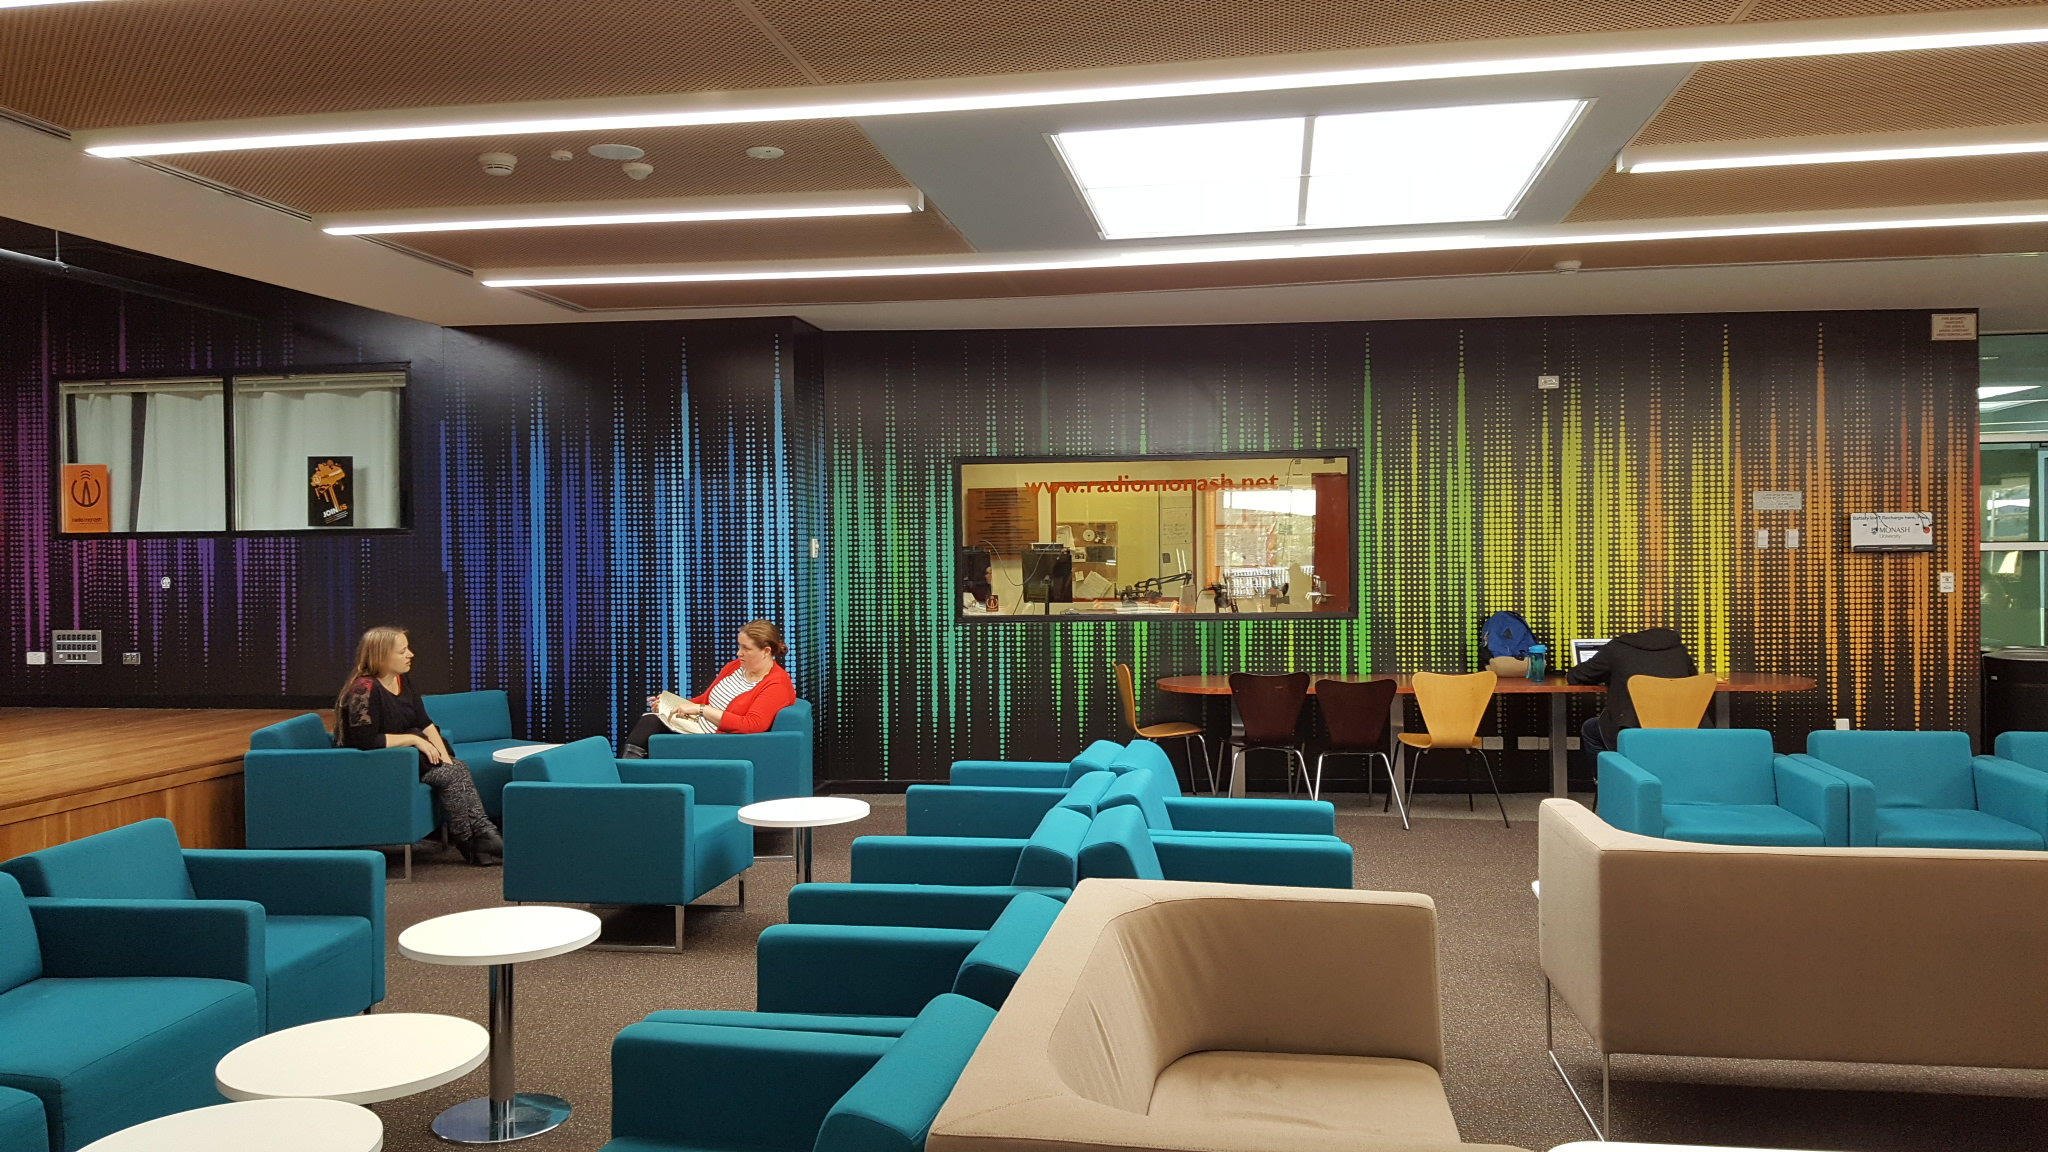 MONASH UNIVERSITY AIRPORT LOUNGE